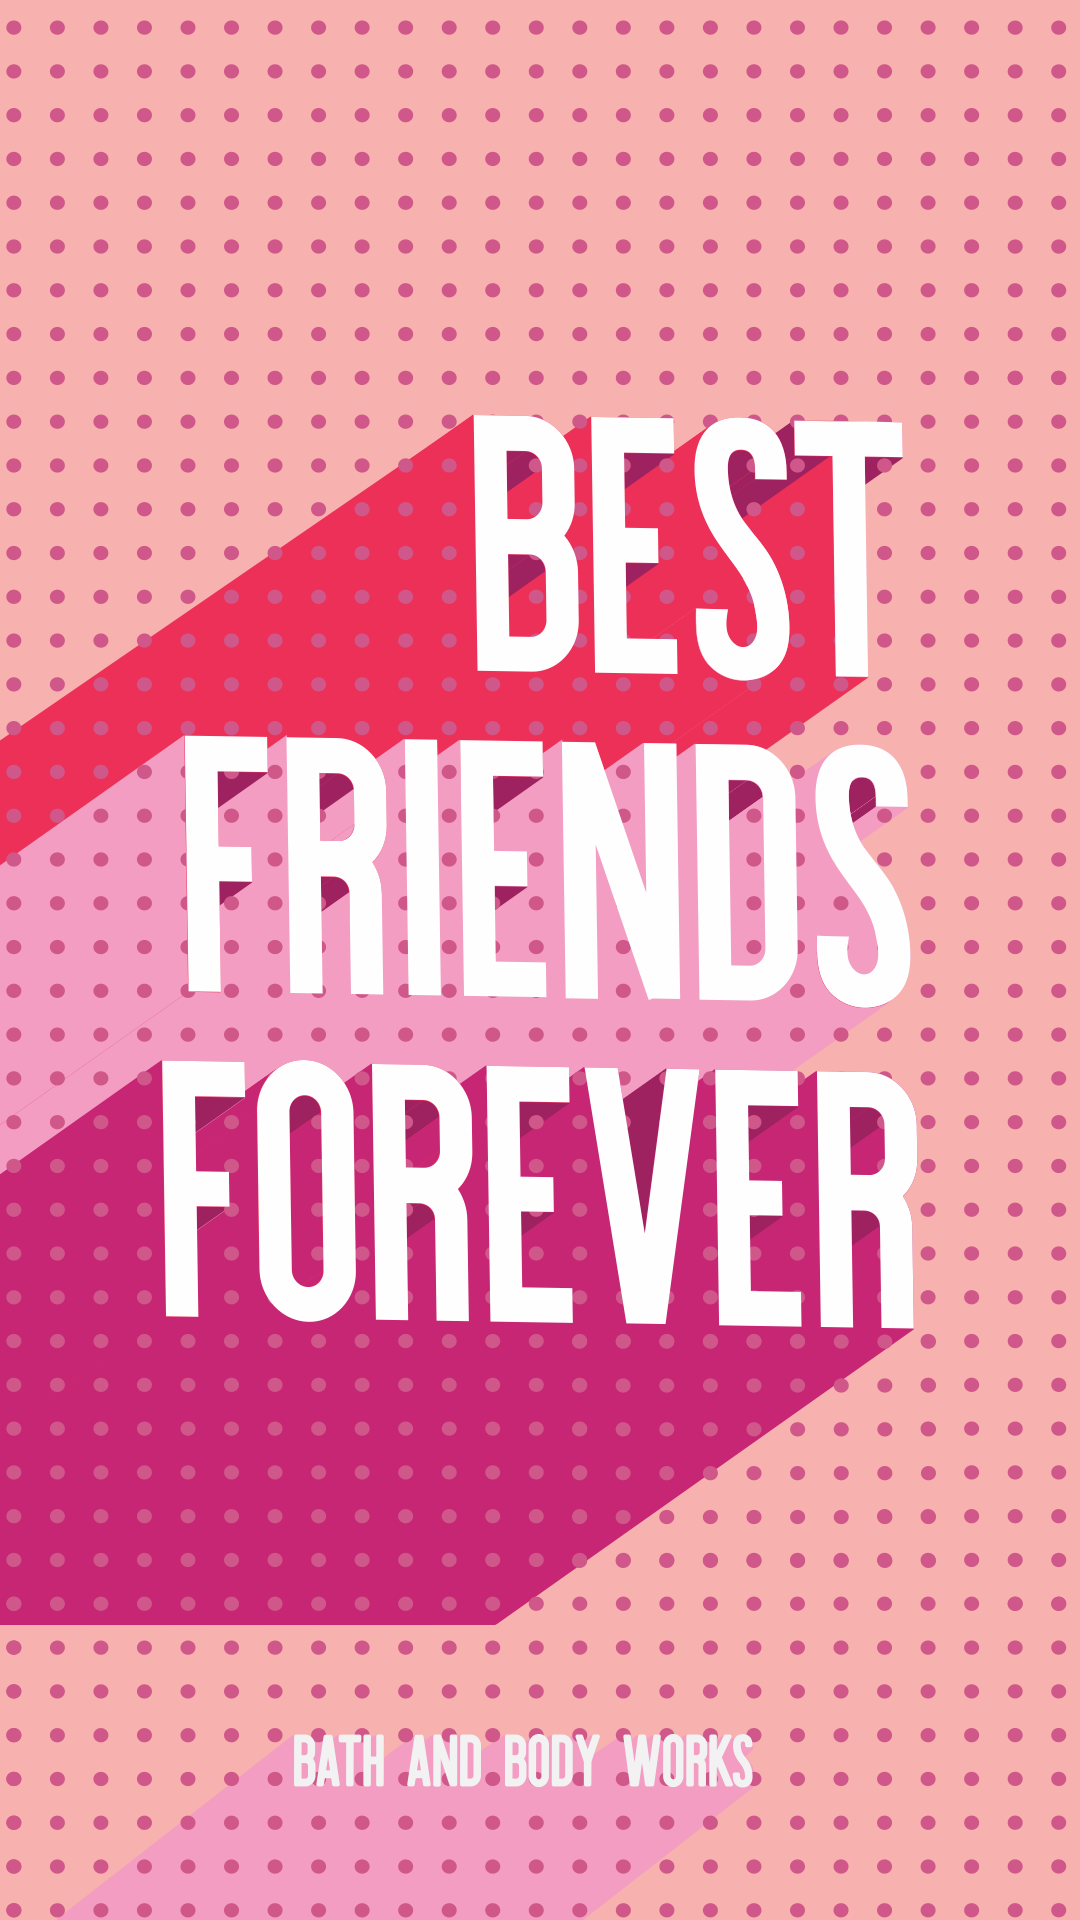 Girly Bff Wallpapers Top Free Girly Bff Backgrounds Wallpaperaccess